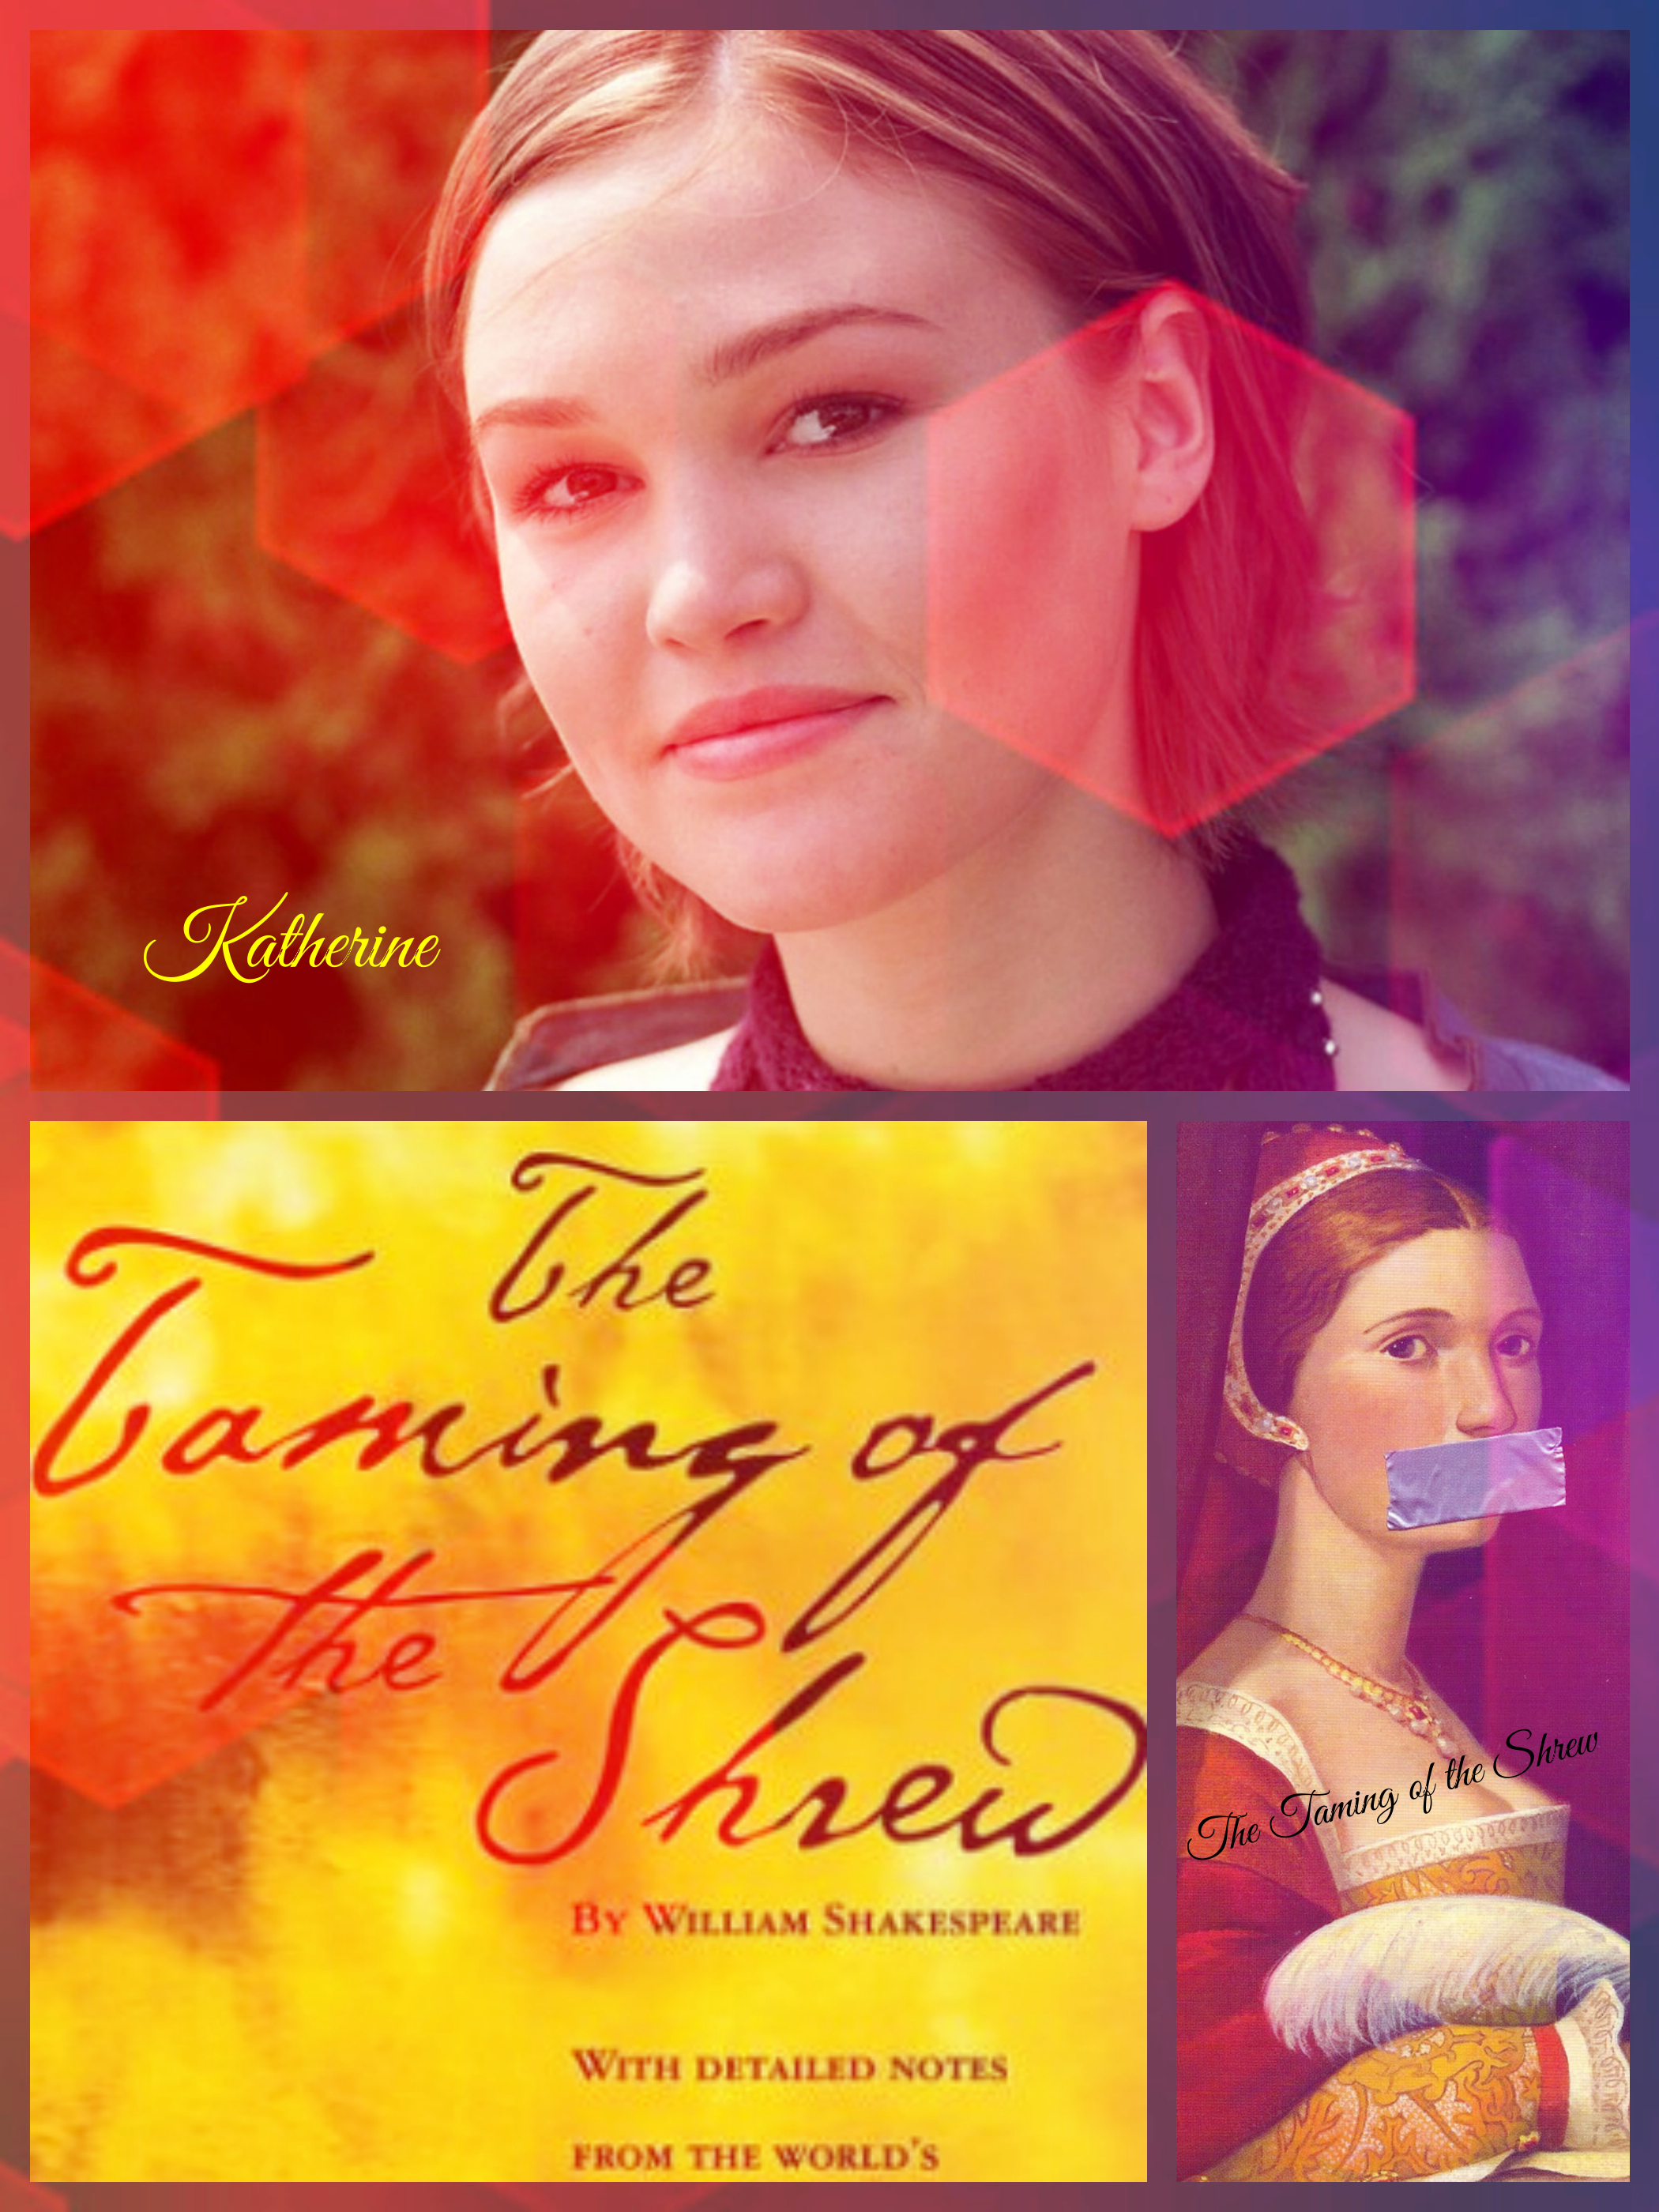 "an analysis of the character katherine in the taming of the shrew a play by william shakespeare William shakespeare was said to be born in 1564 in stratford avenue, england   -there is deception between characters (mistaken identities)  plot summary:   he then sits down to watch a play, which is the taming of the shrew  return  for the wedding banquet and katherine has become ""tamed."